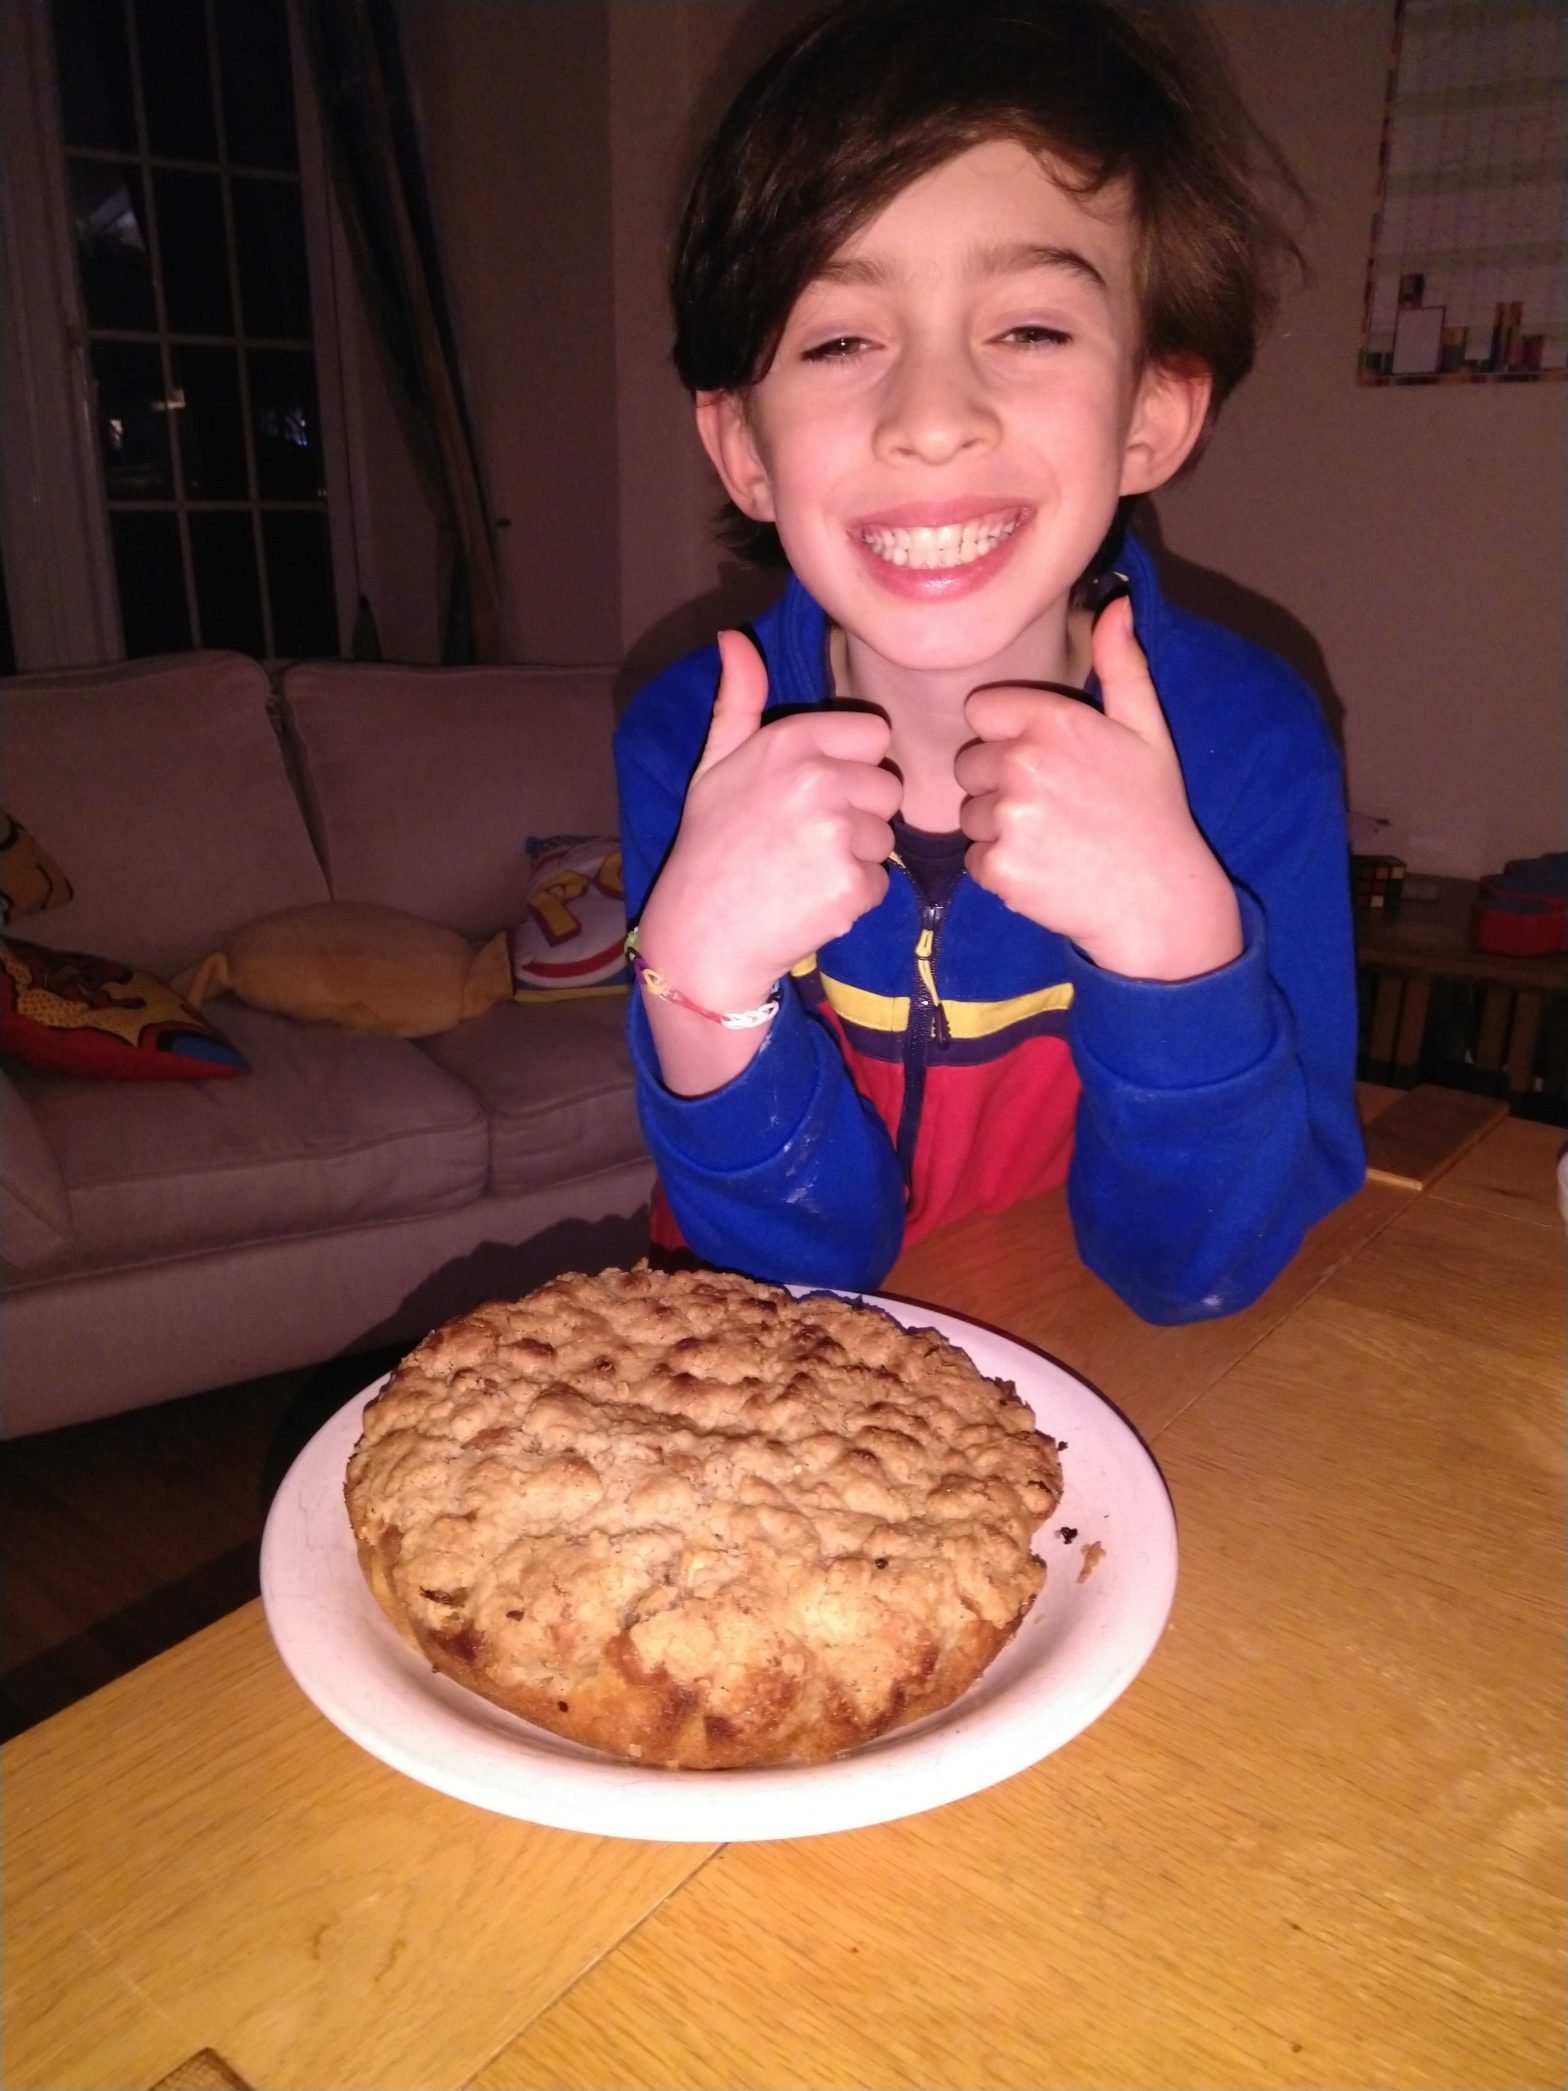 Daniel made a Apple Crumble Cake today. It was super tasty!